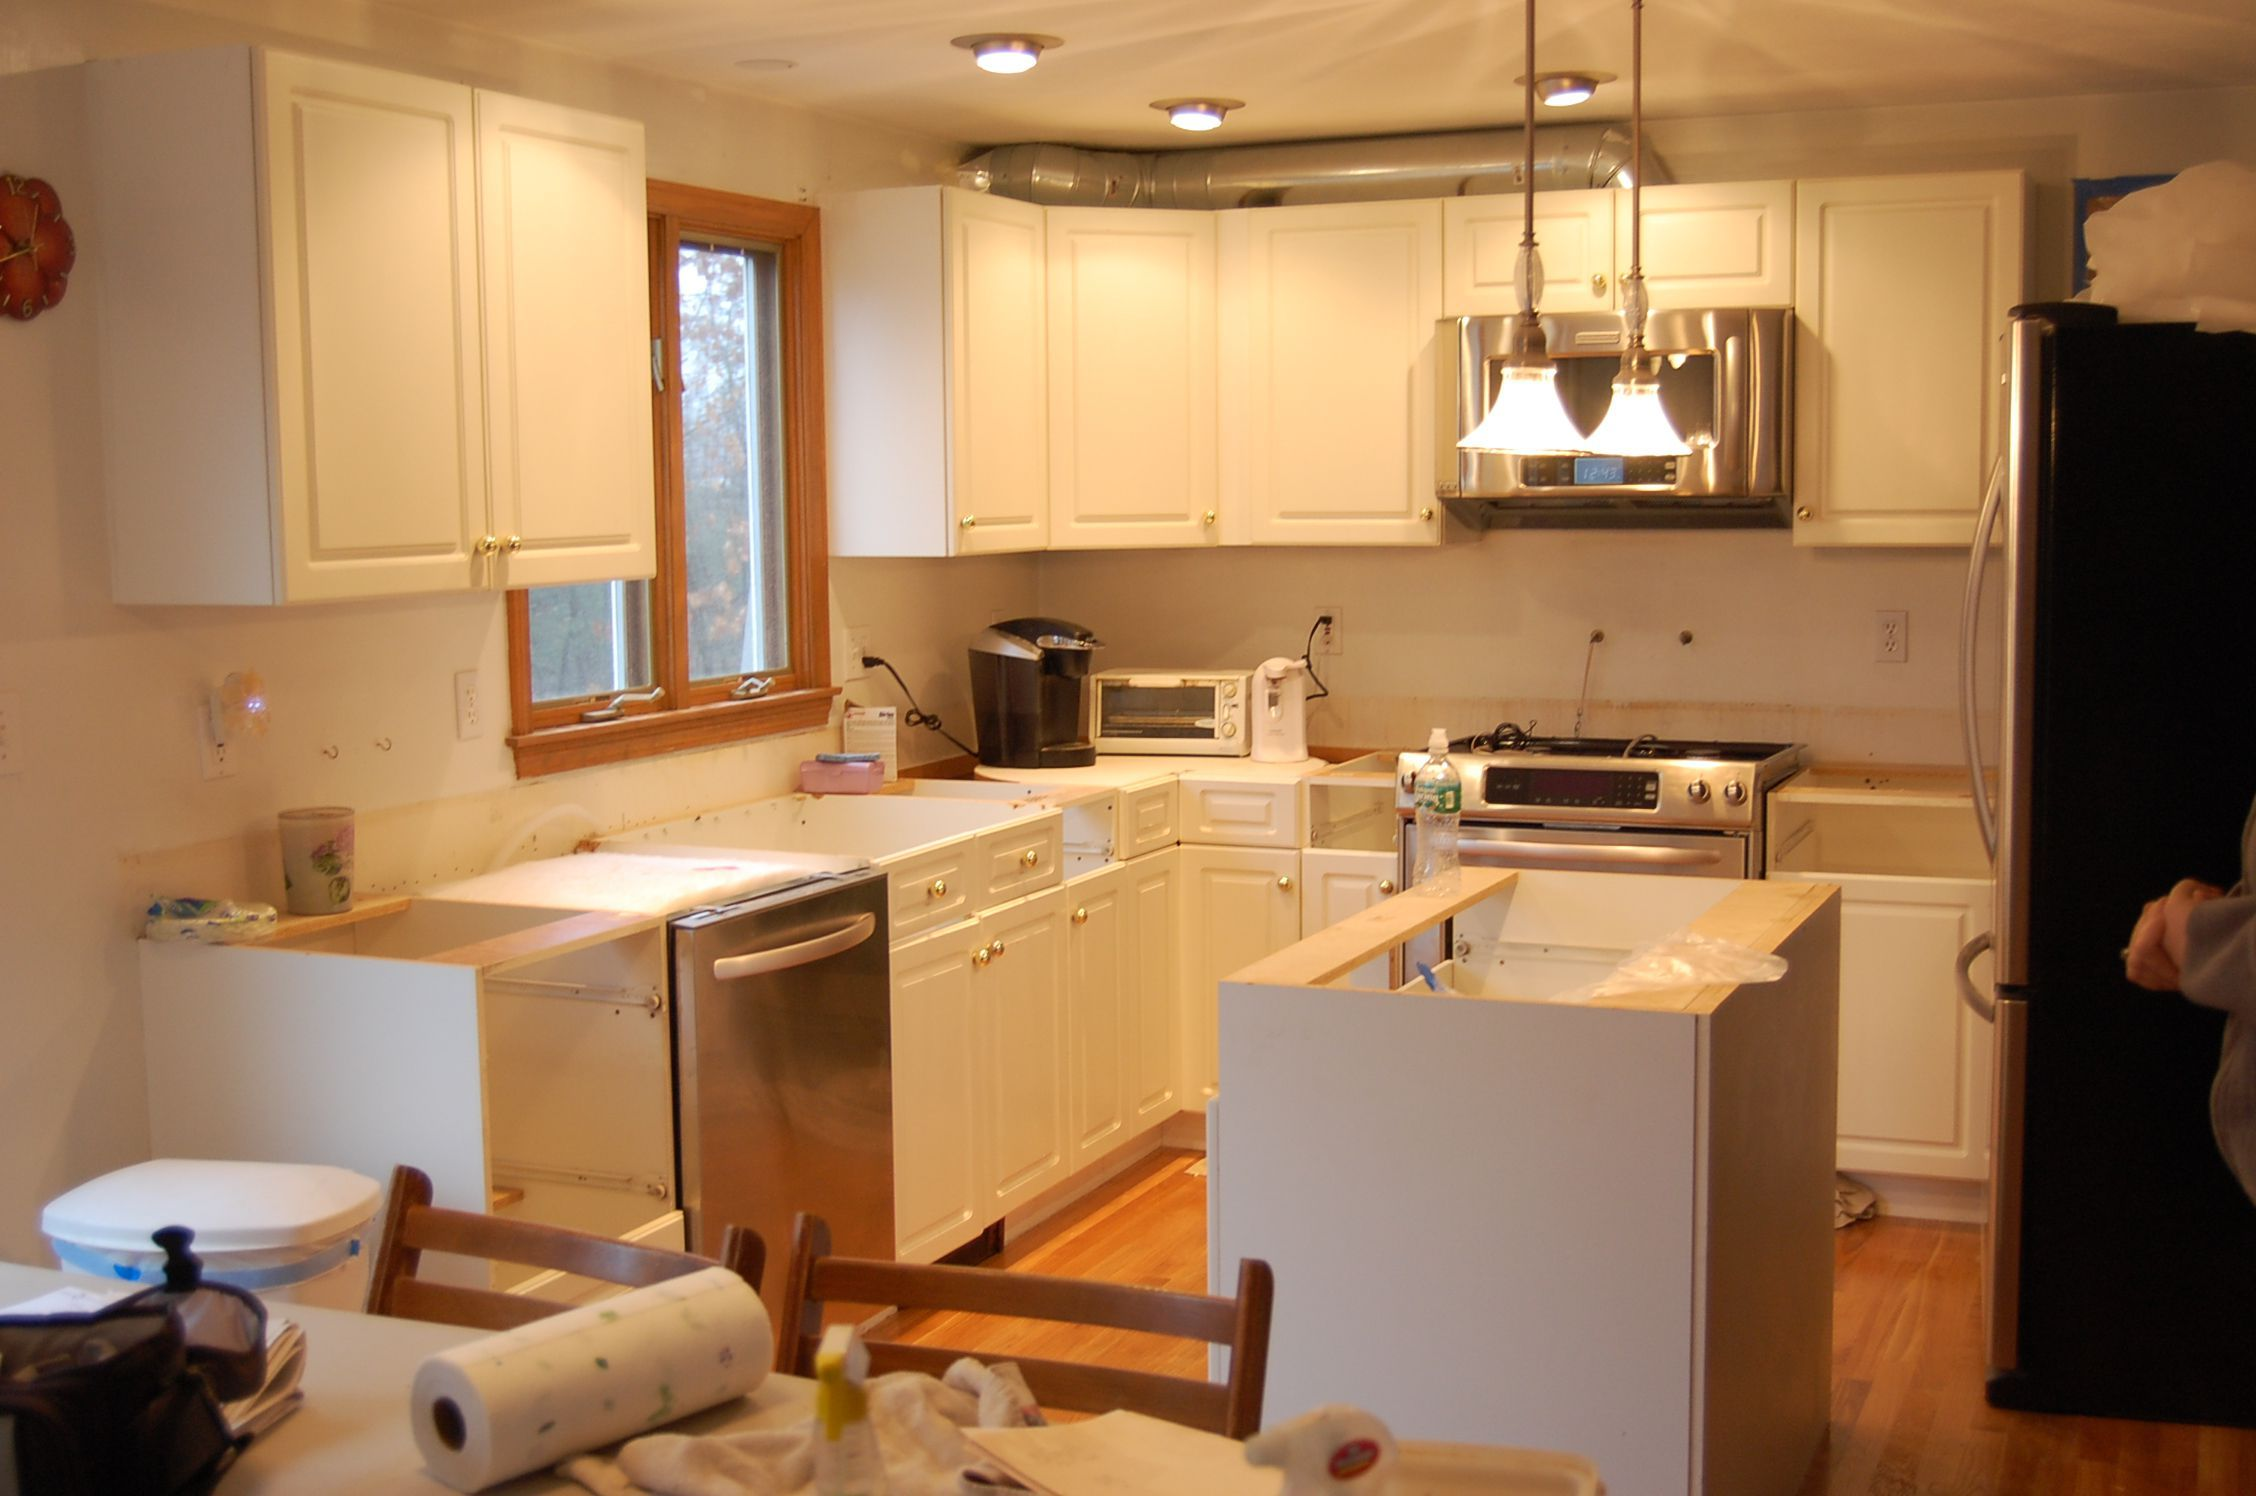 Cabinet Refacing Cost And Factors To Consider Traba Homes From Cost  Refacing Kitchen Cabinets